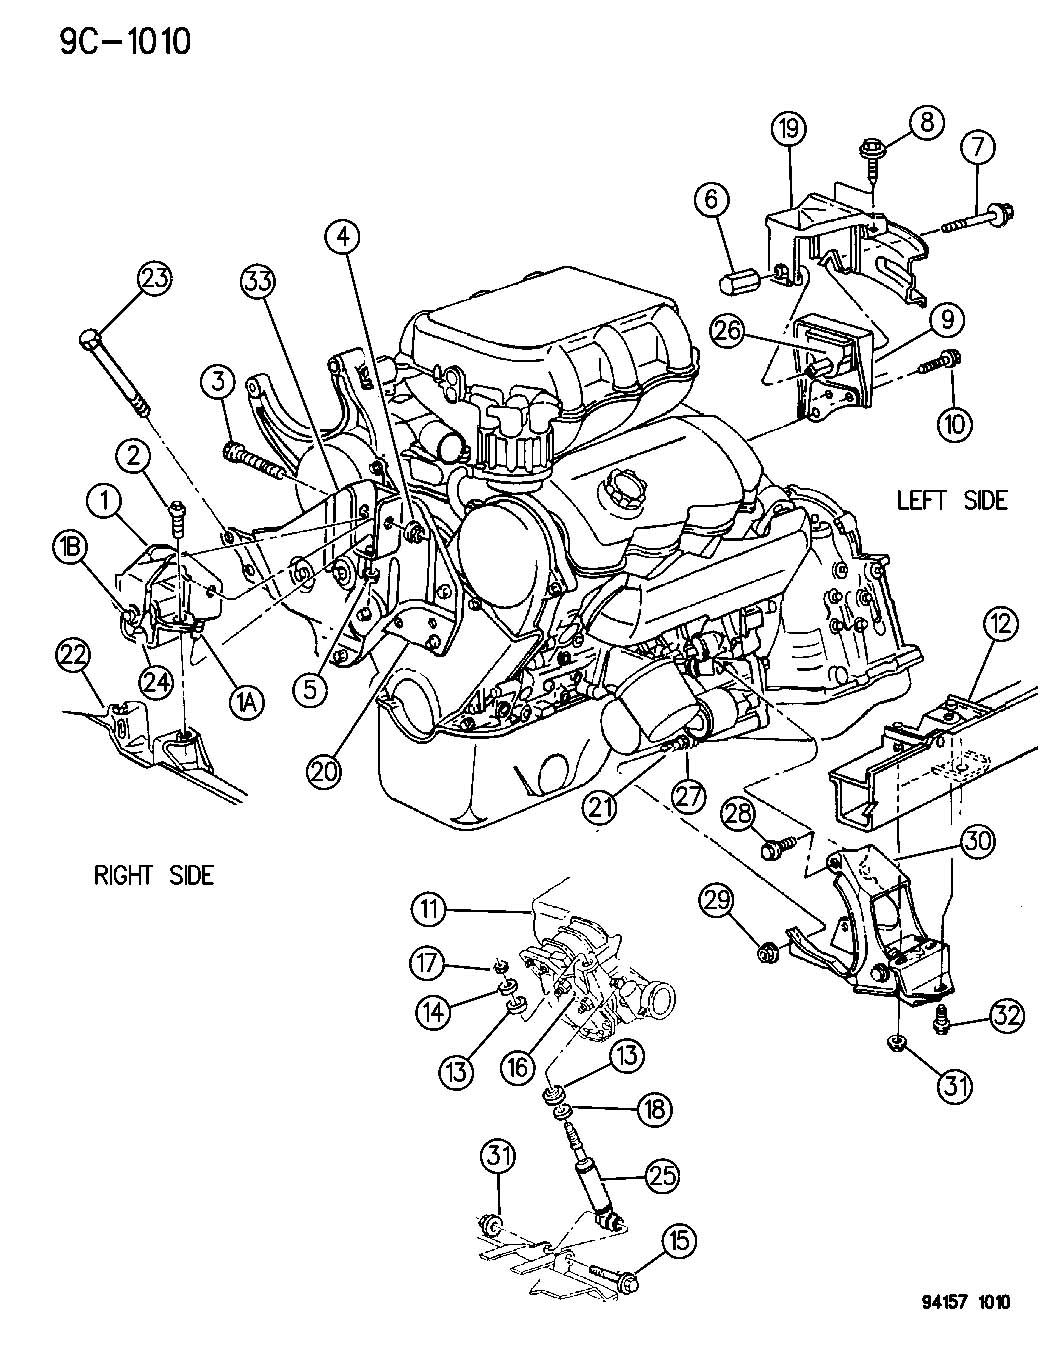 1994 ford aerostar 3 0 engine diagram